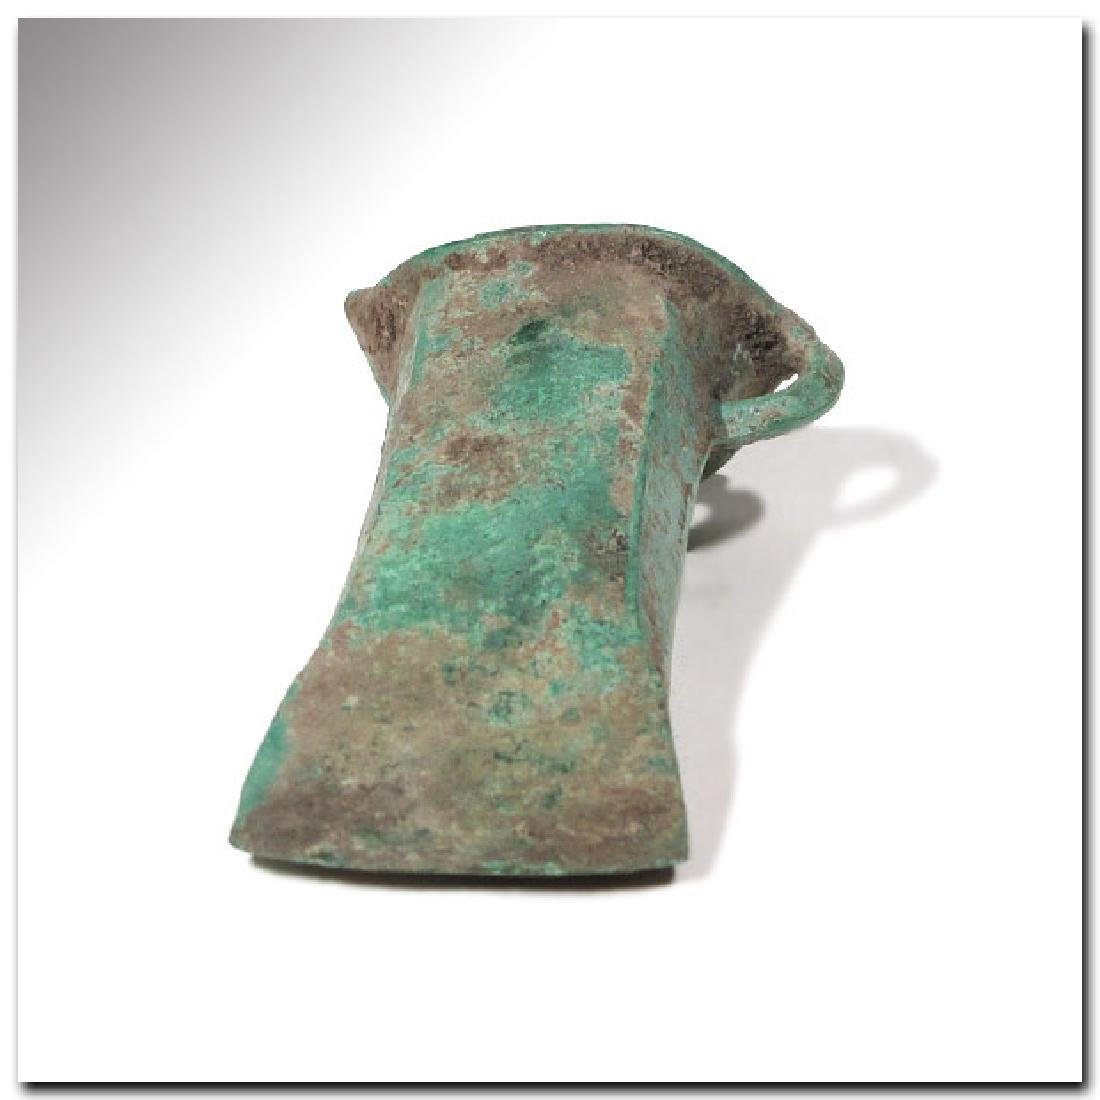 Bronze Age Axe Head, North European, c. 900-800 B.C. - 7